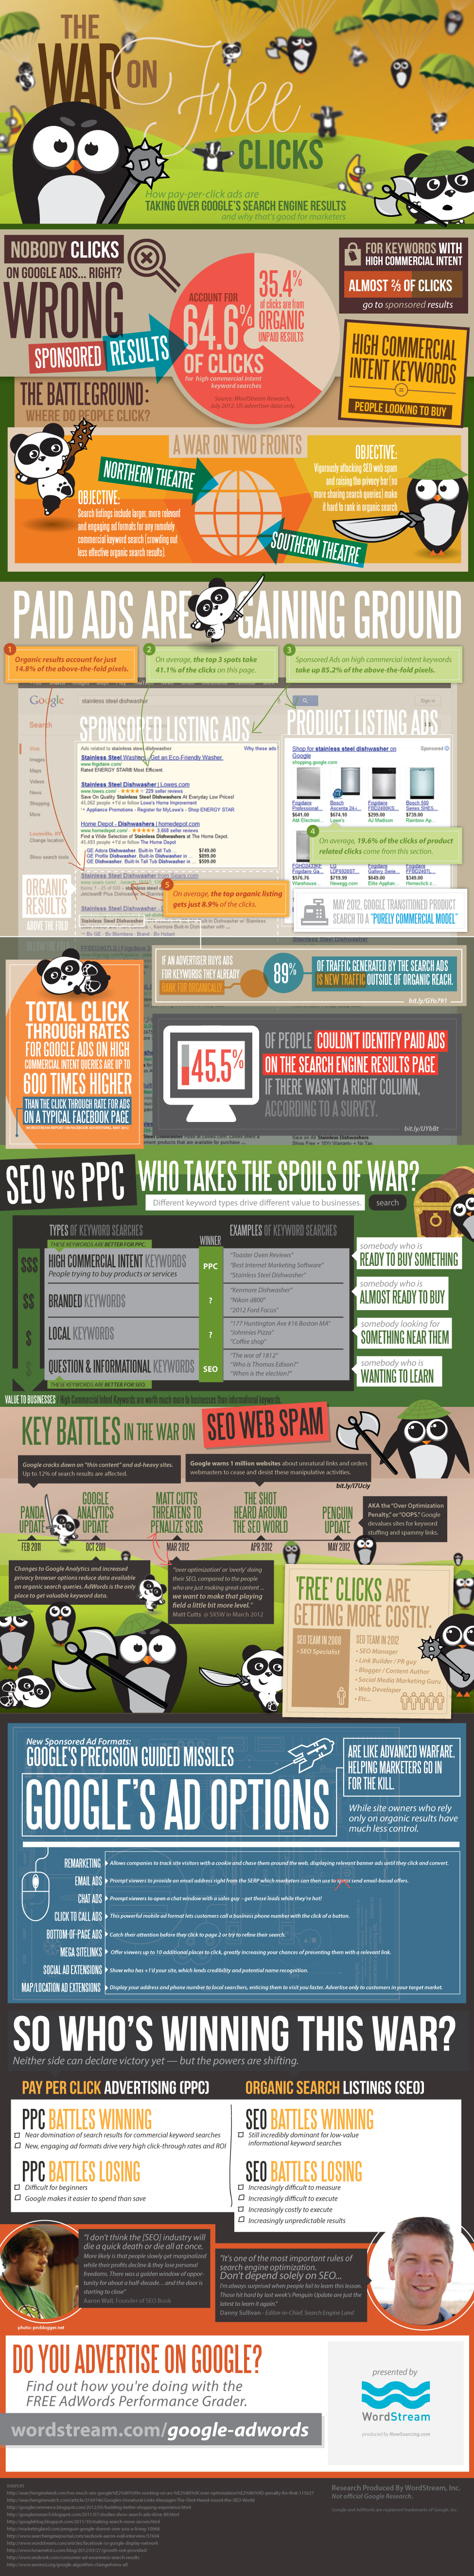 How Google Ads are Taking over the Search Engine Results Page.